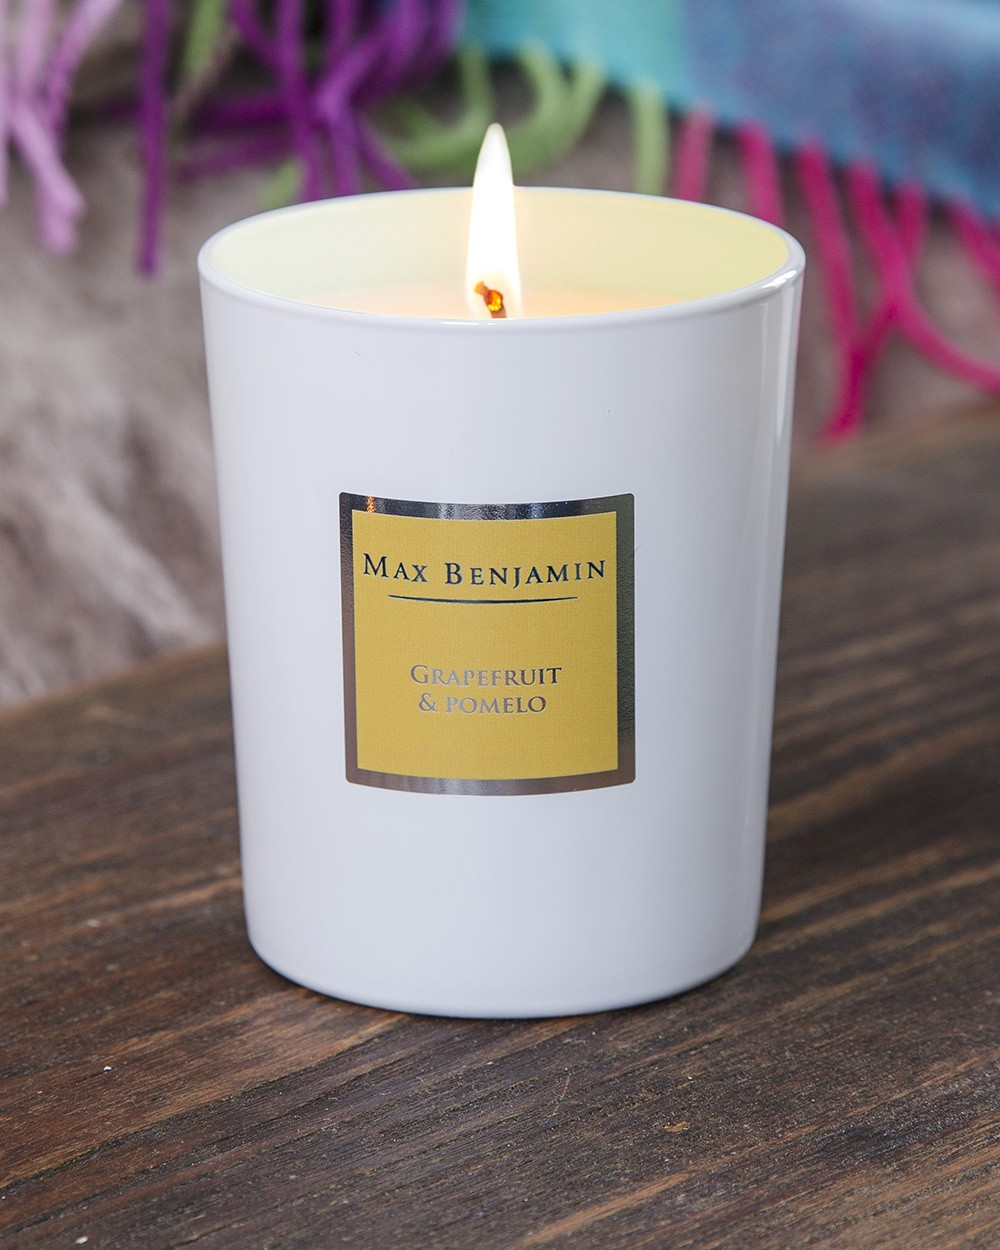 Grapefruit and Pomelo Scented Candle by Max Benjamin